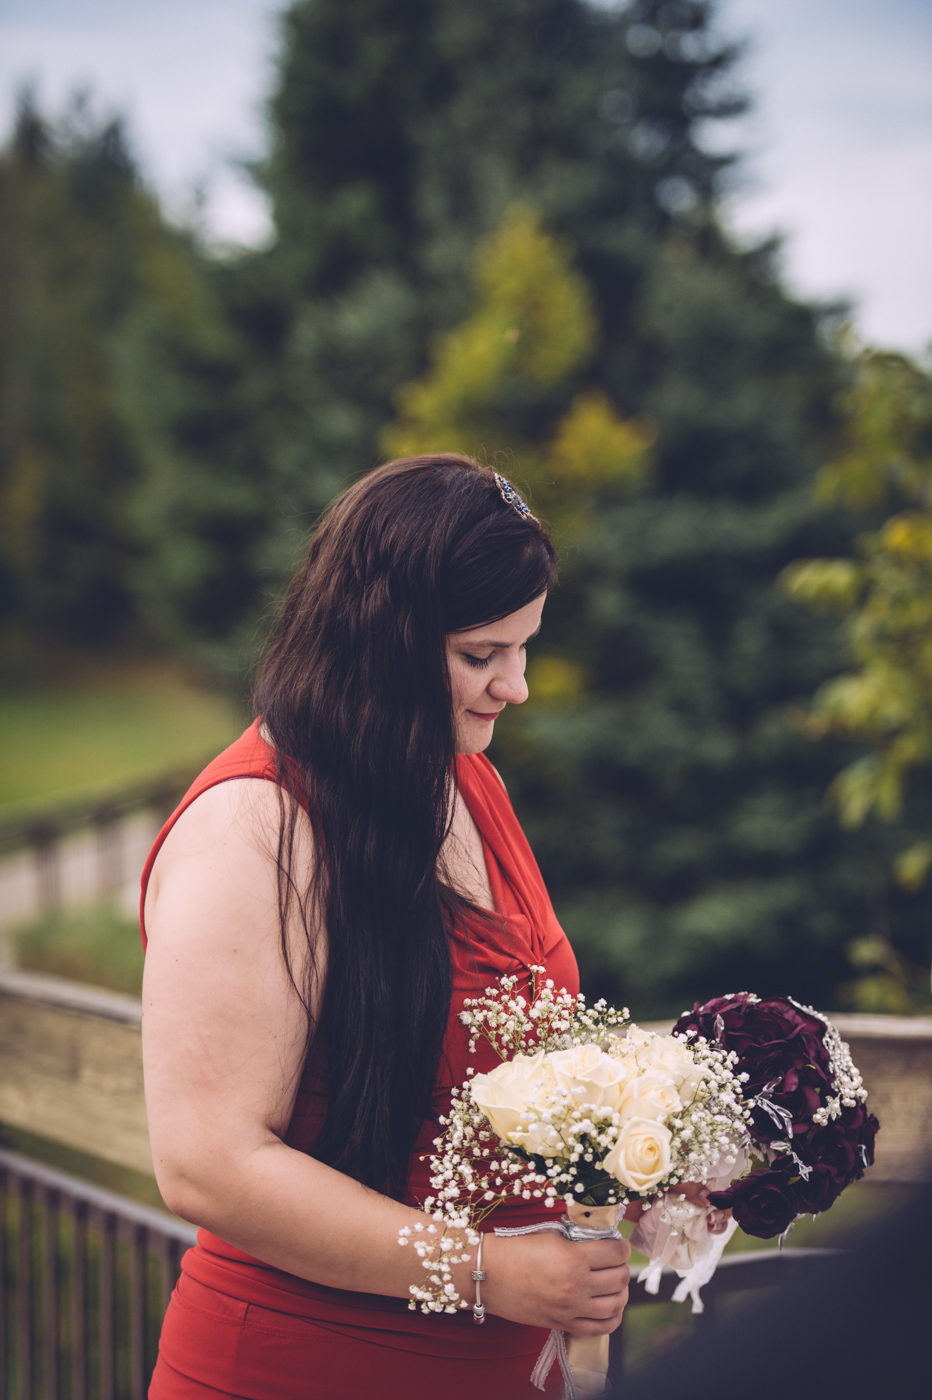 tracy_paul_wedding_blog47.jpg